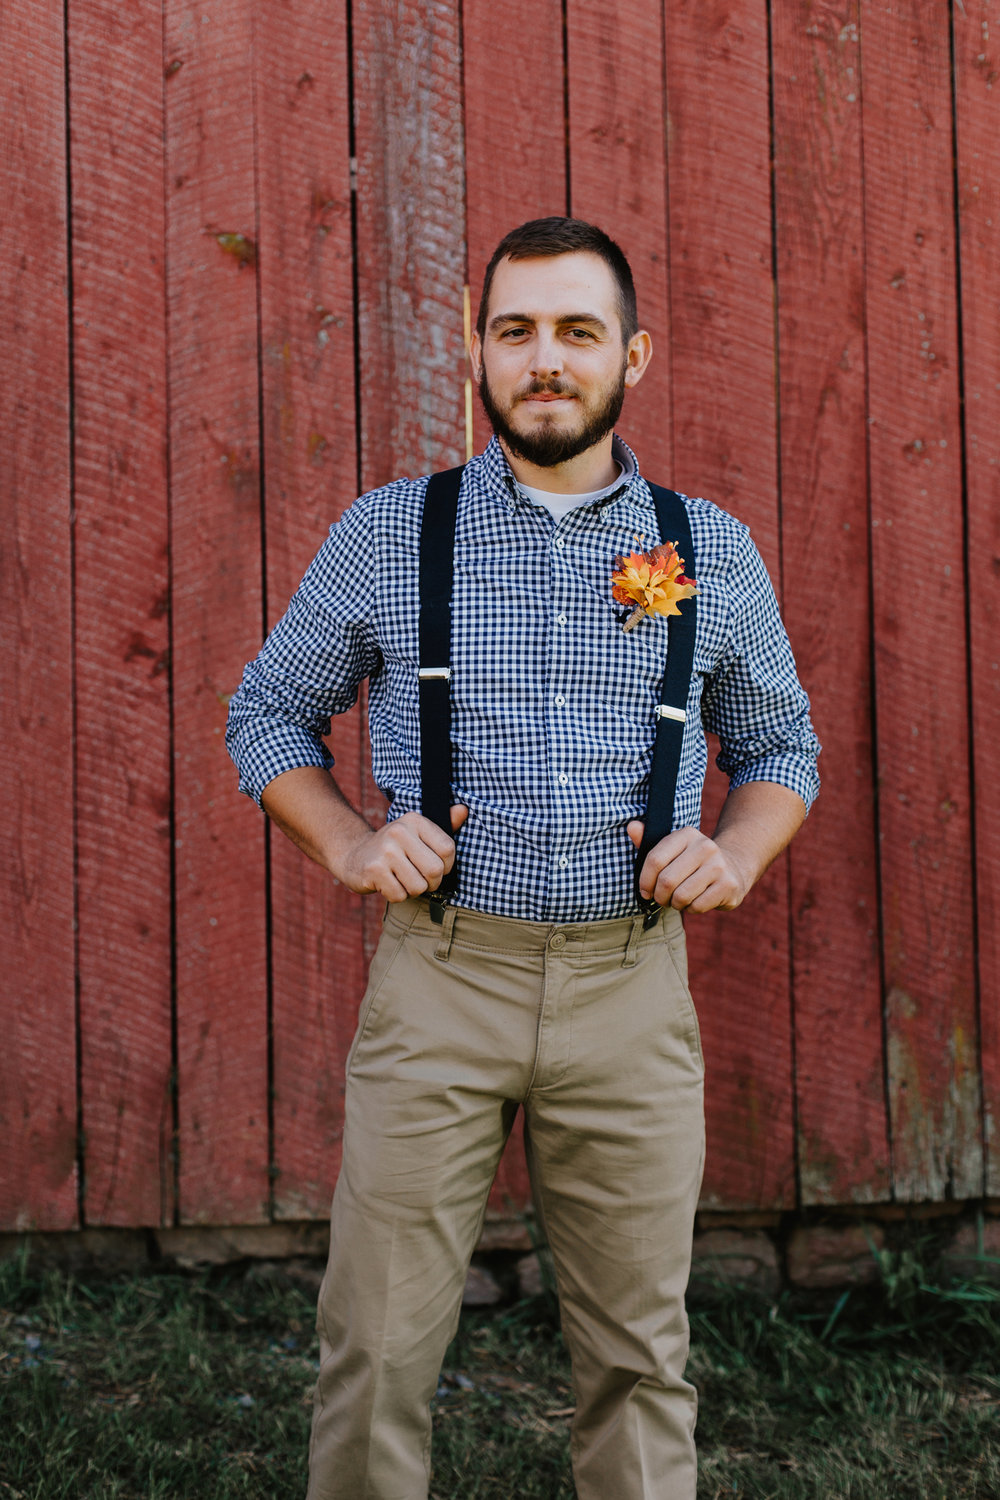 groom-wedding-day-portrait-the-farm-at-beeber-drive